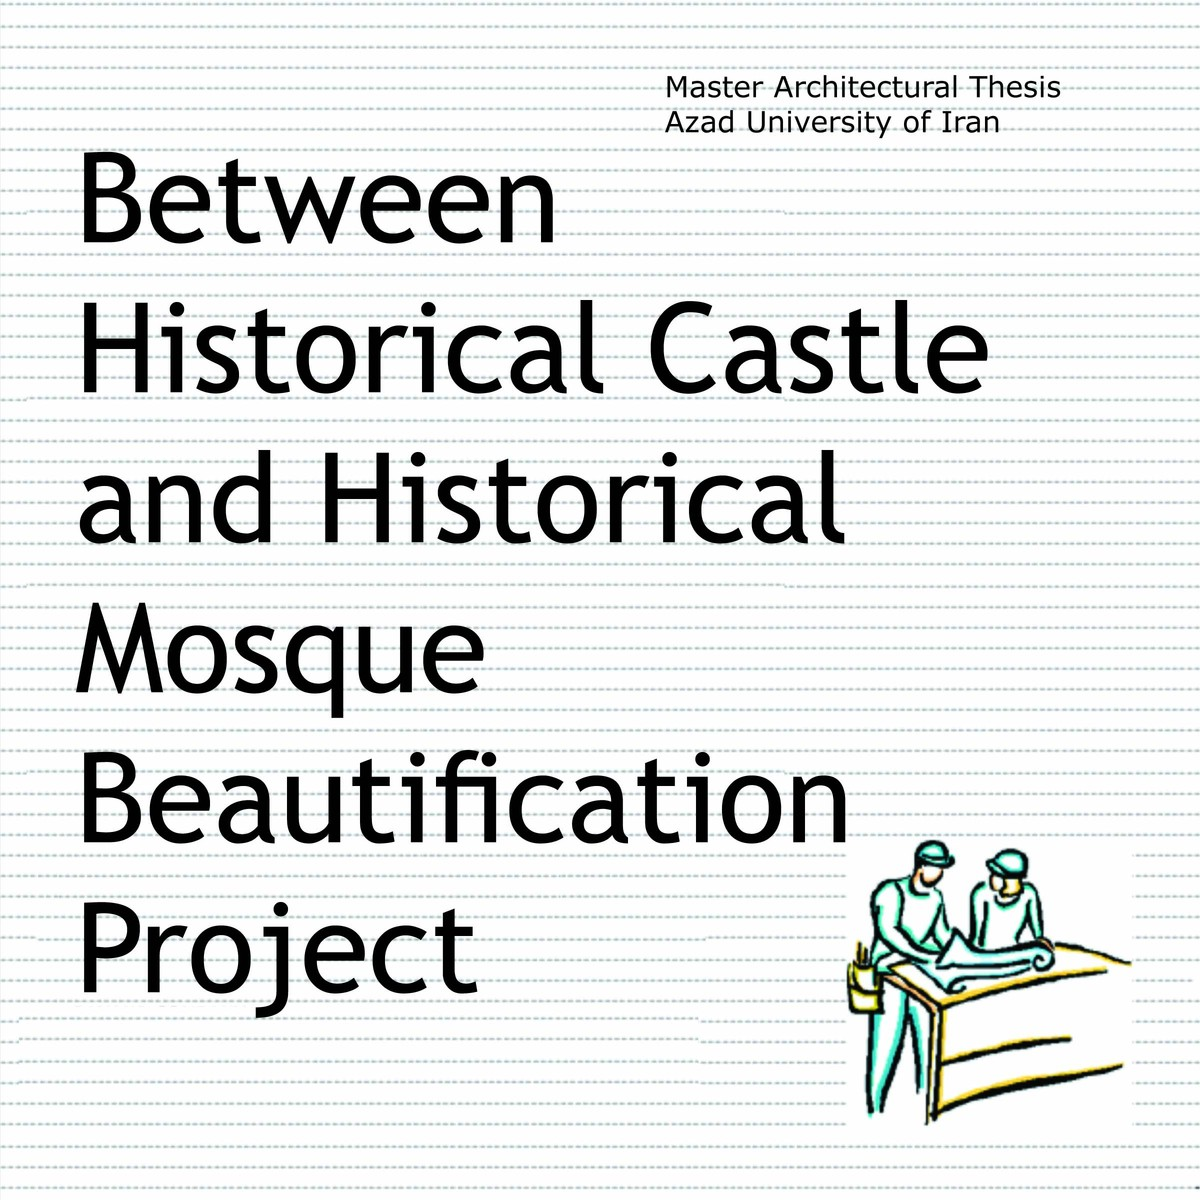 Historical castle beautification Project